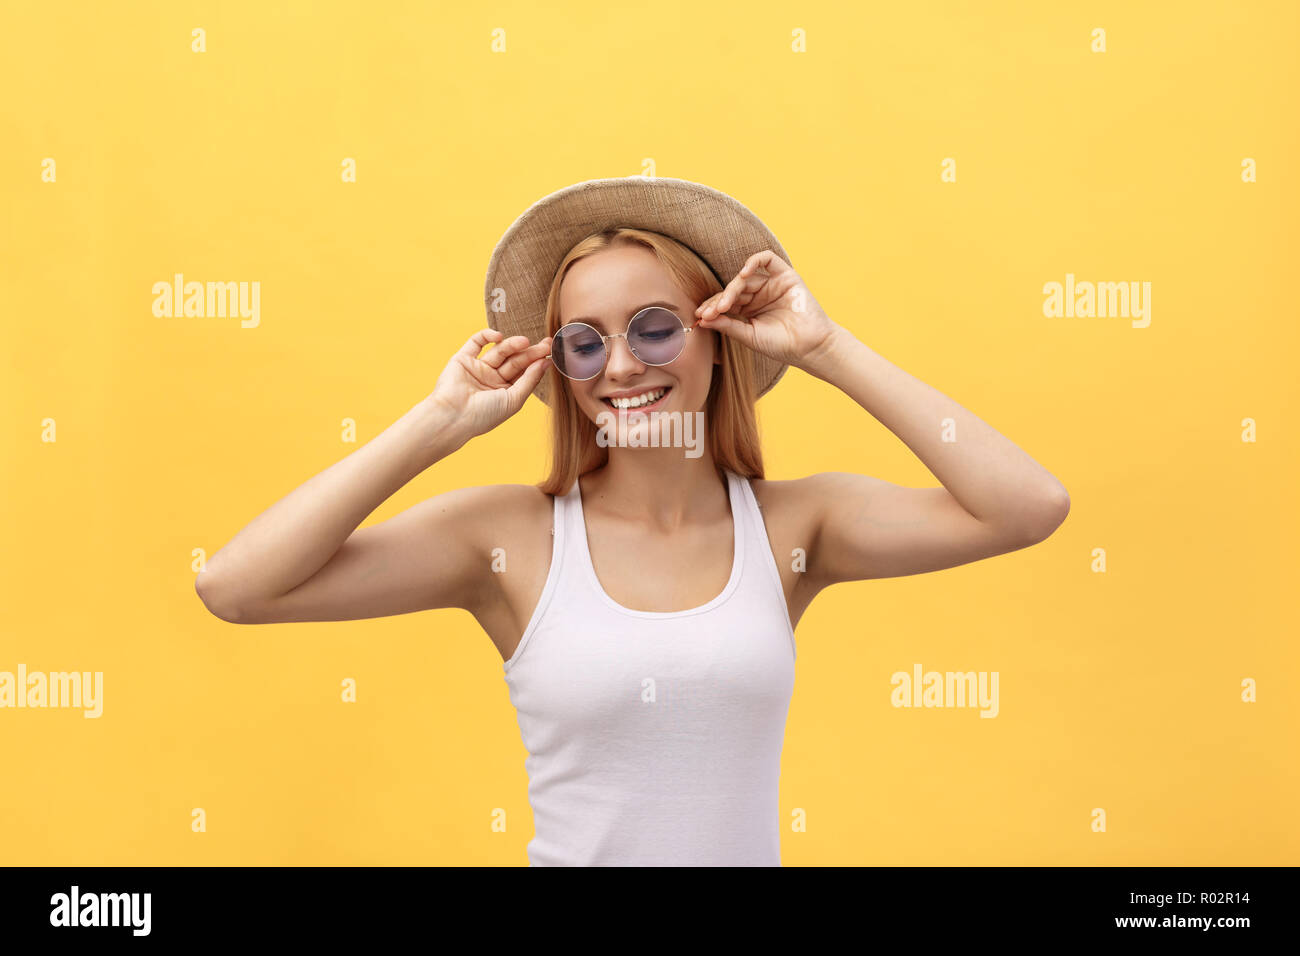 f3b3dd32862 Happy cheerful young woman wearing white t-shirt rejoicing at positive news  or birthday gift